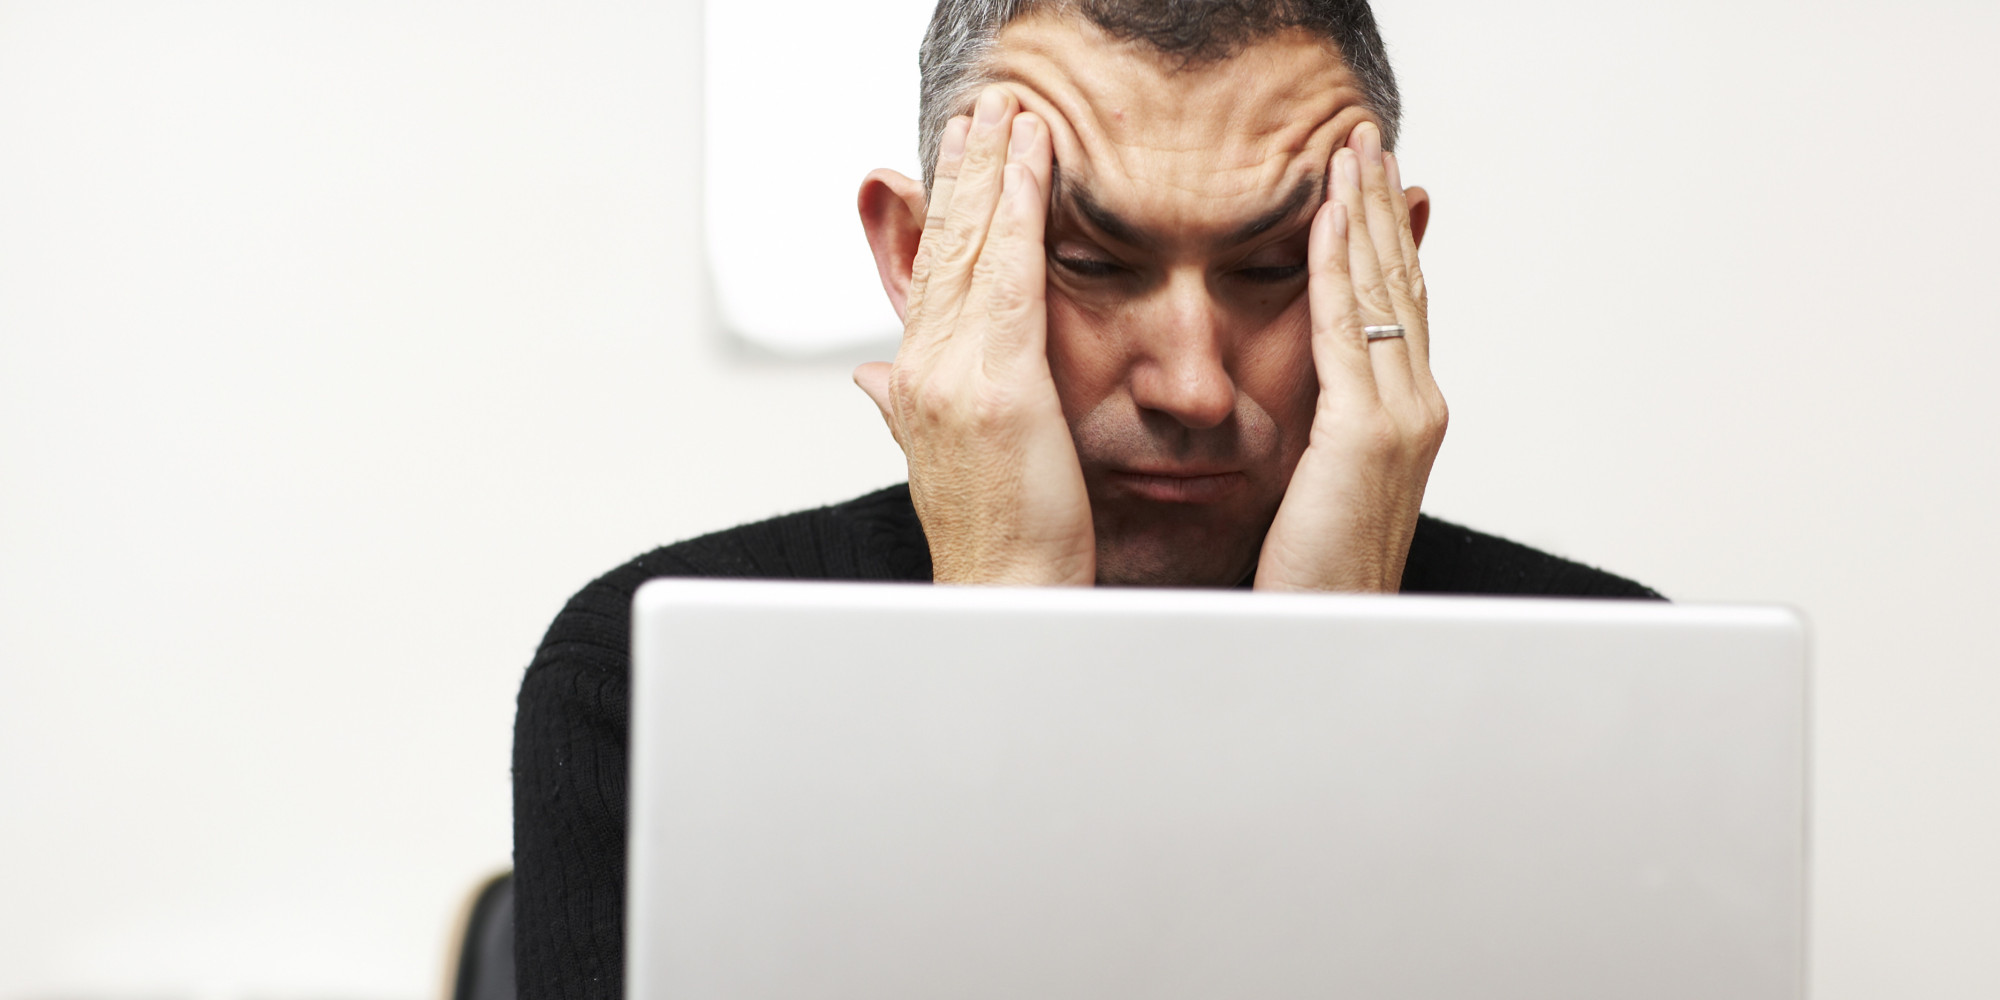 o-MAN-FRUSTRATED-WITH-COMPUTER-facebook.